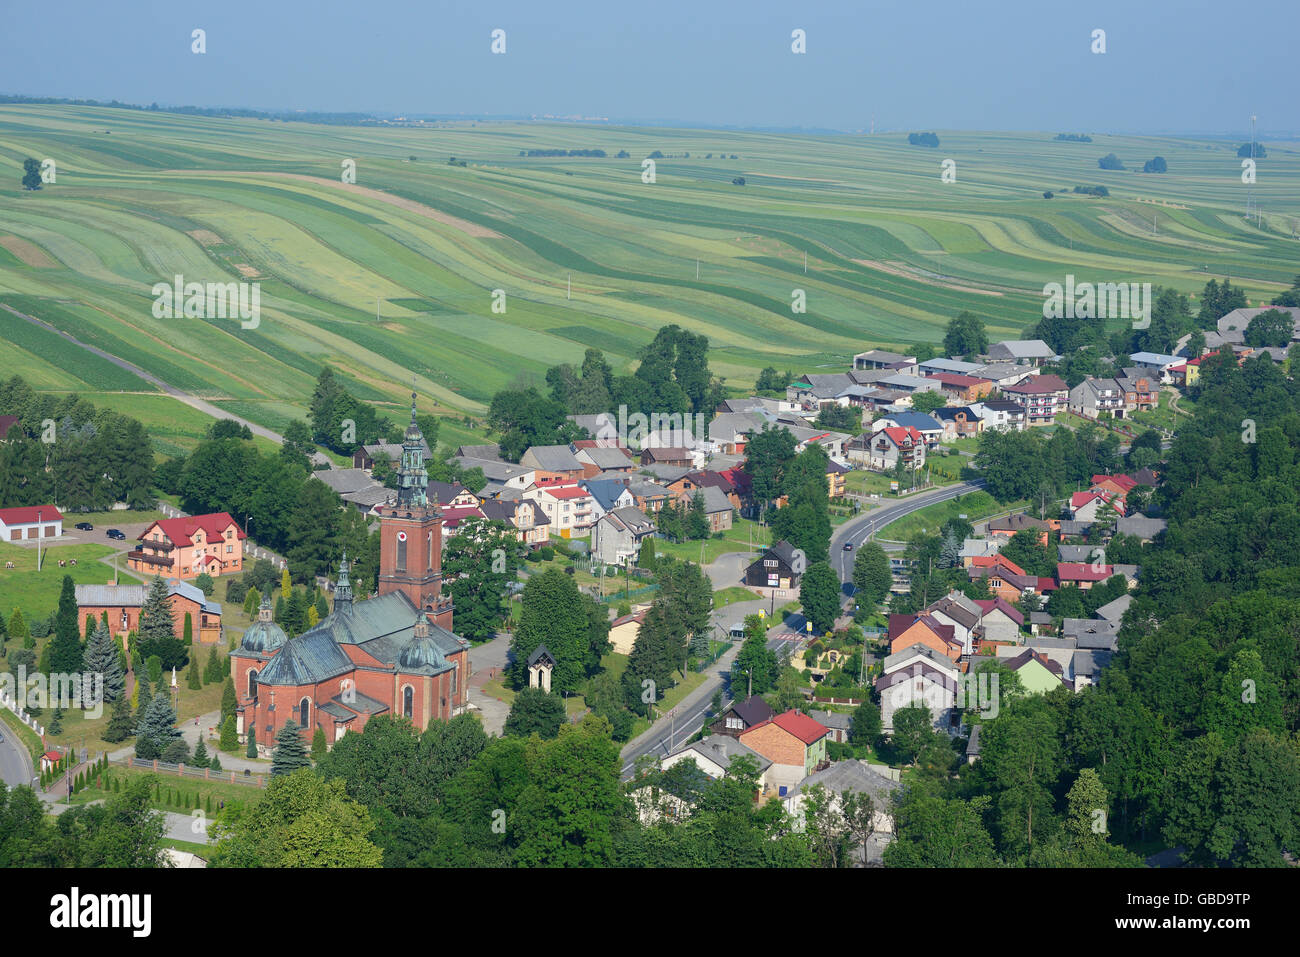 VILLAGE SURROUNDED BY GREEN NARROW FIELDS (aerial view). Suloszowa, Poland. - Stock Image